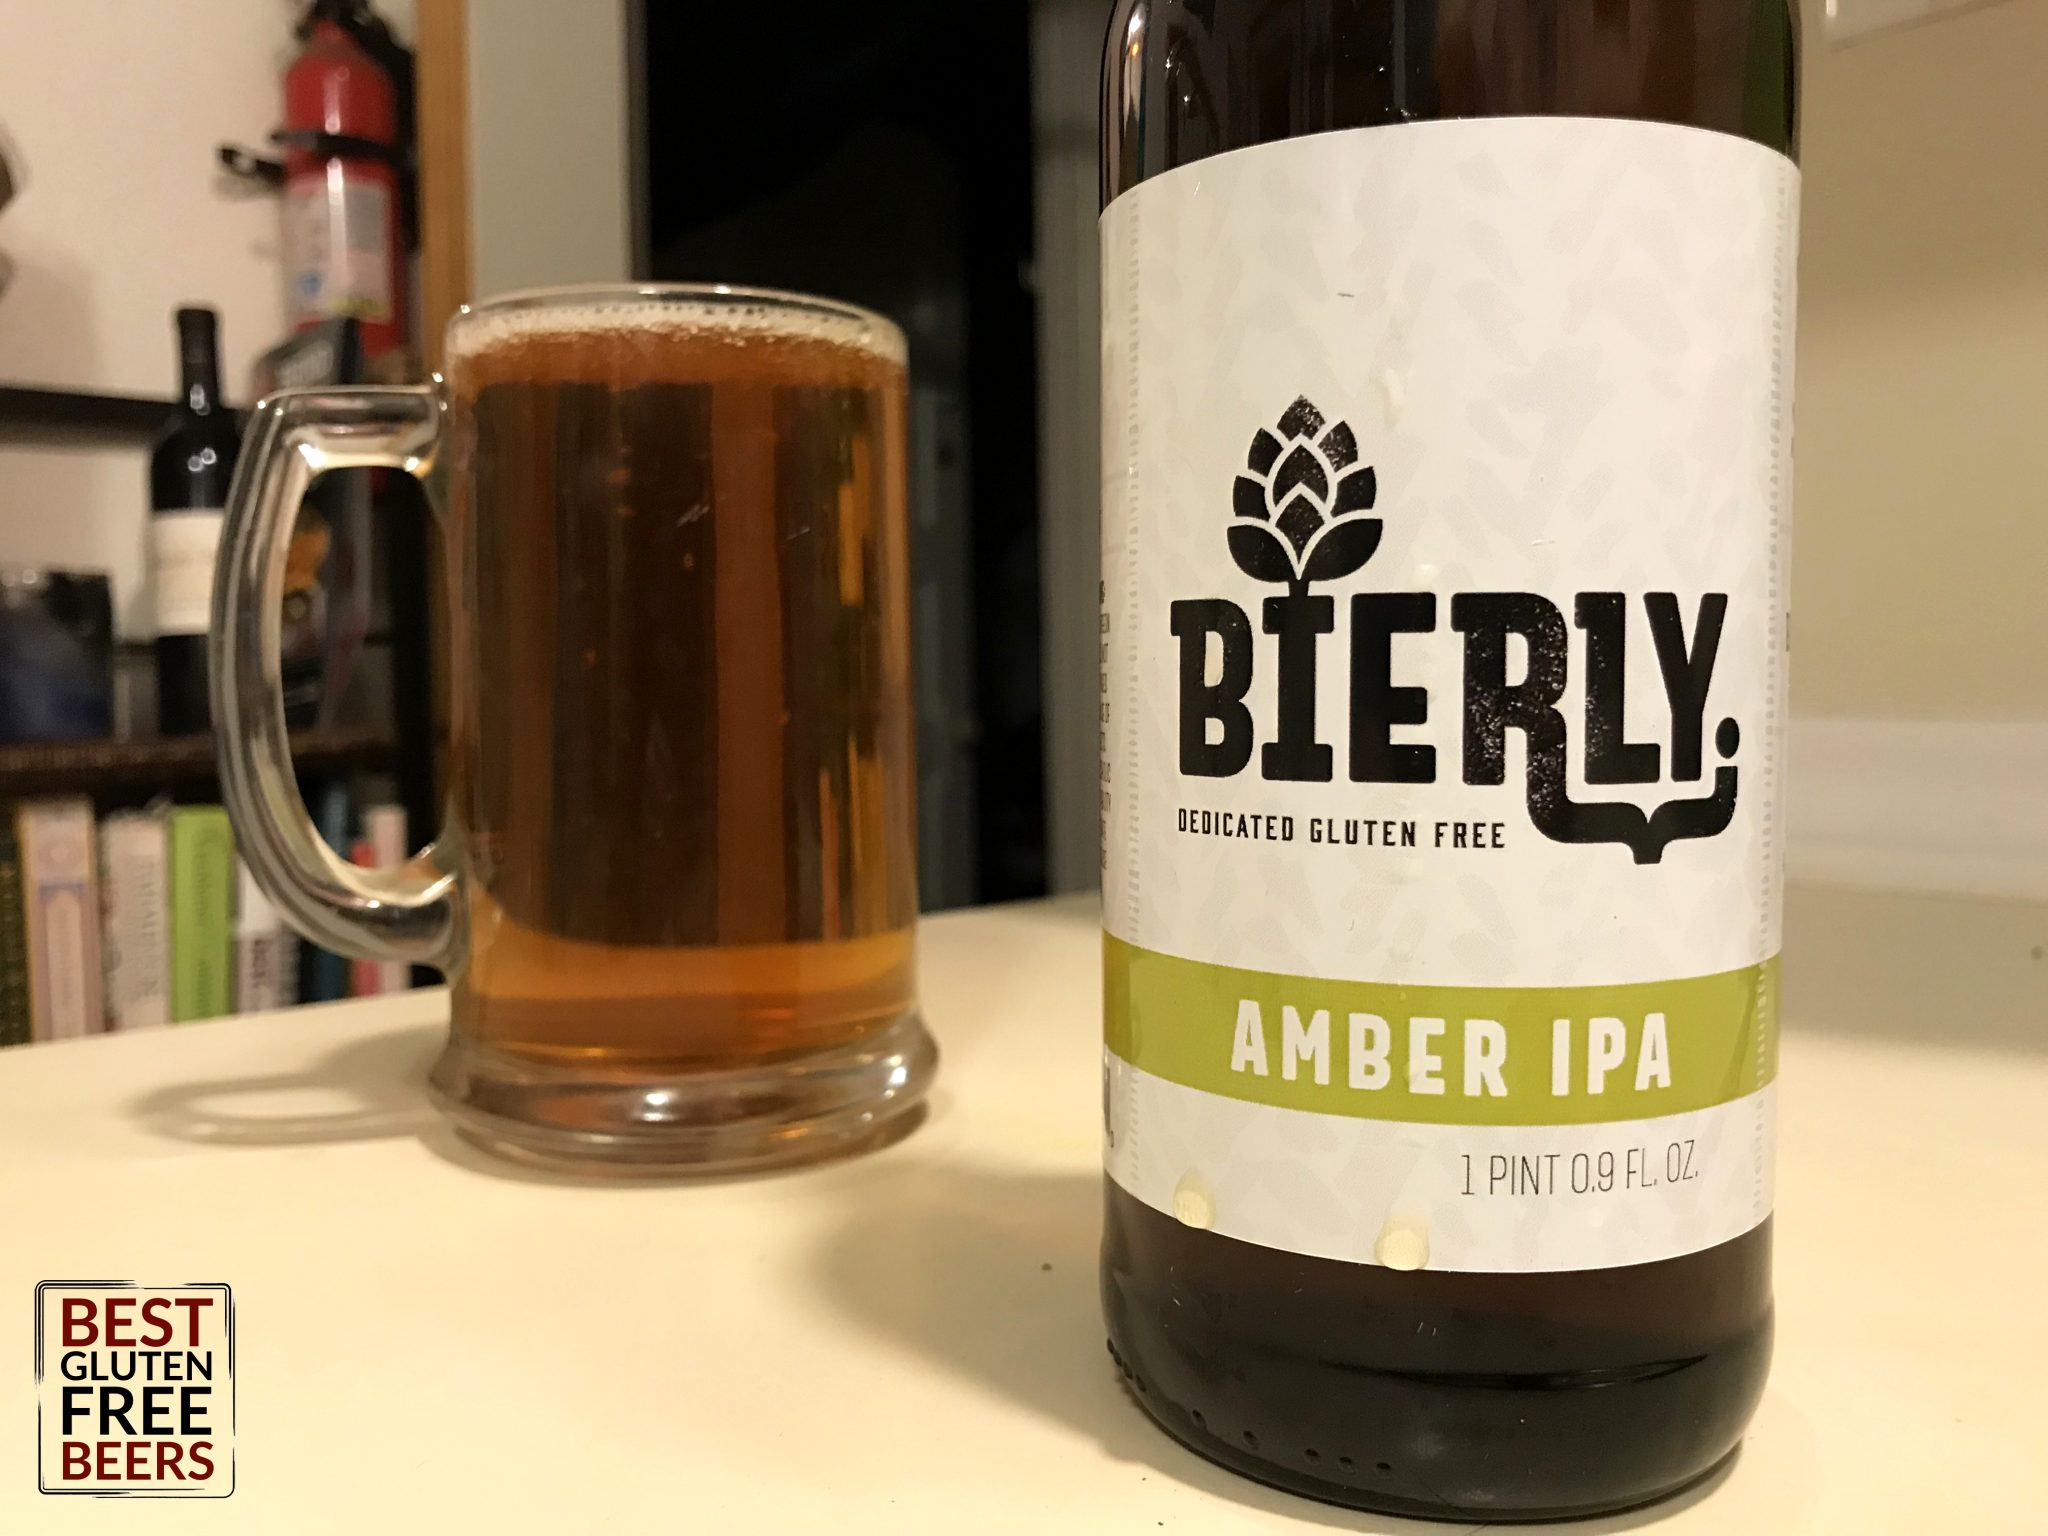 Best Gluten Free Beers Bierly Brewing Amber IPA